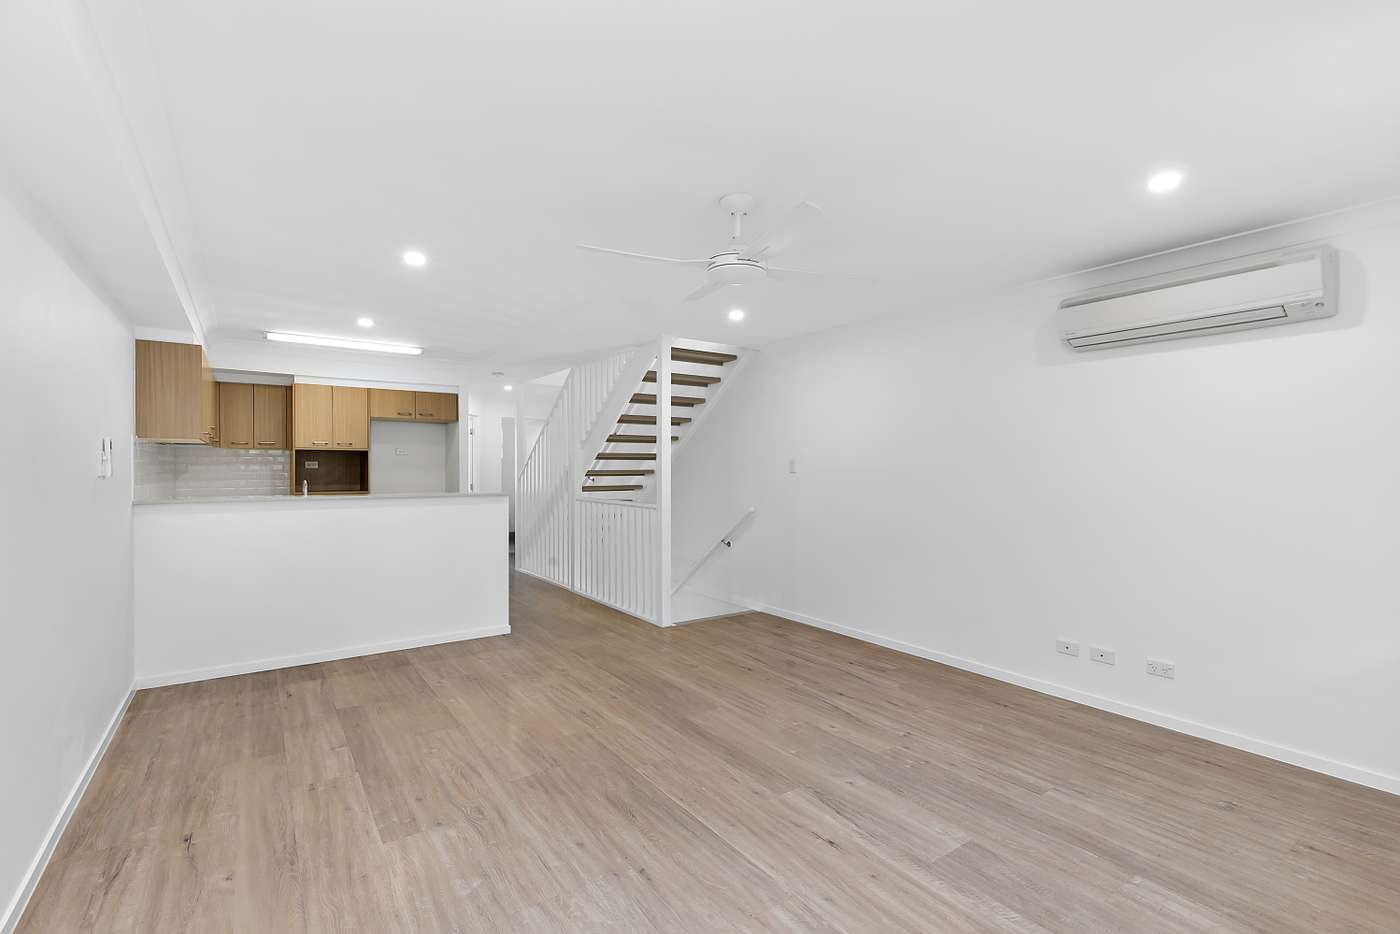 Fifth view of Homely townhouse listing, 9/39-41 Surman Street East, Birkdale QLD 4159